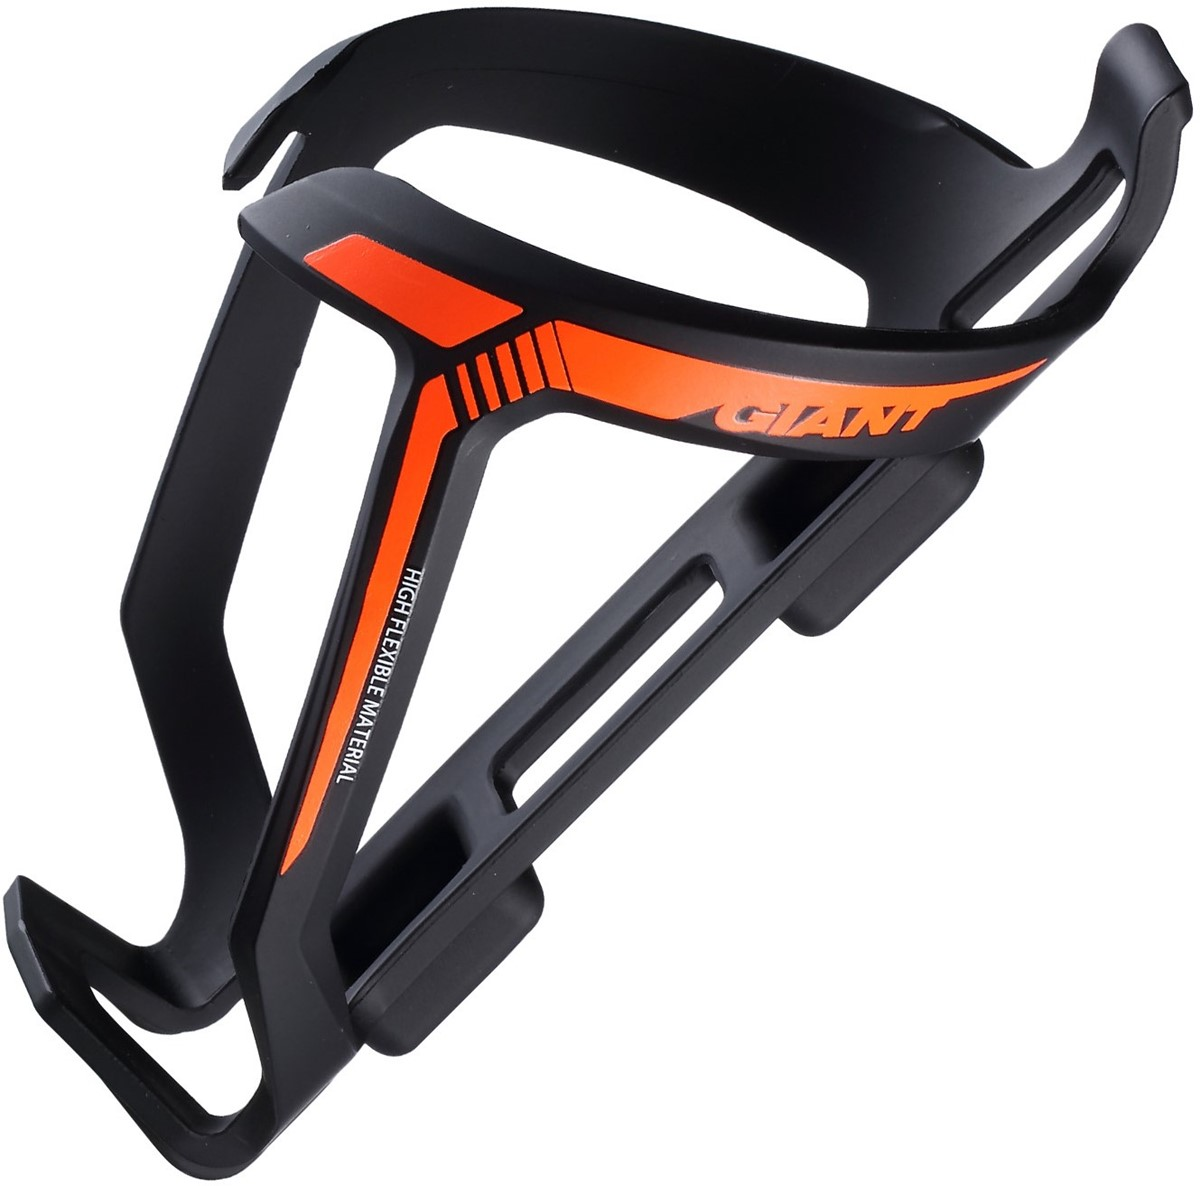 Black//Neon Red Light Weight z GIANT Proway Water Bottle Cage